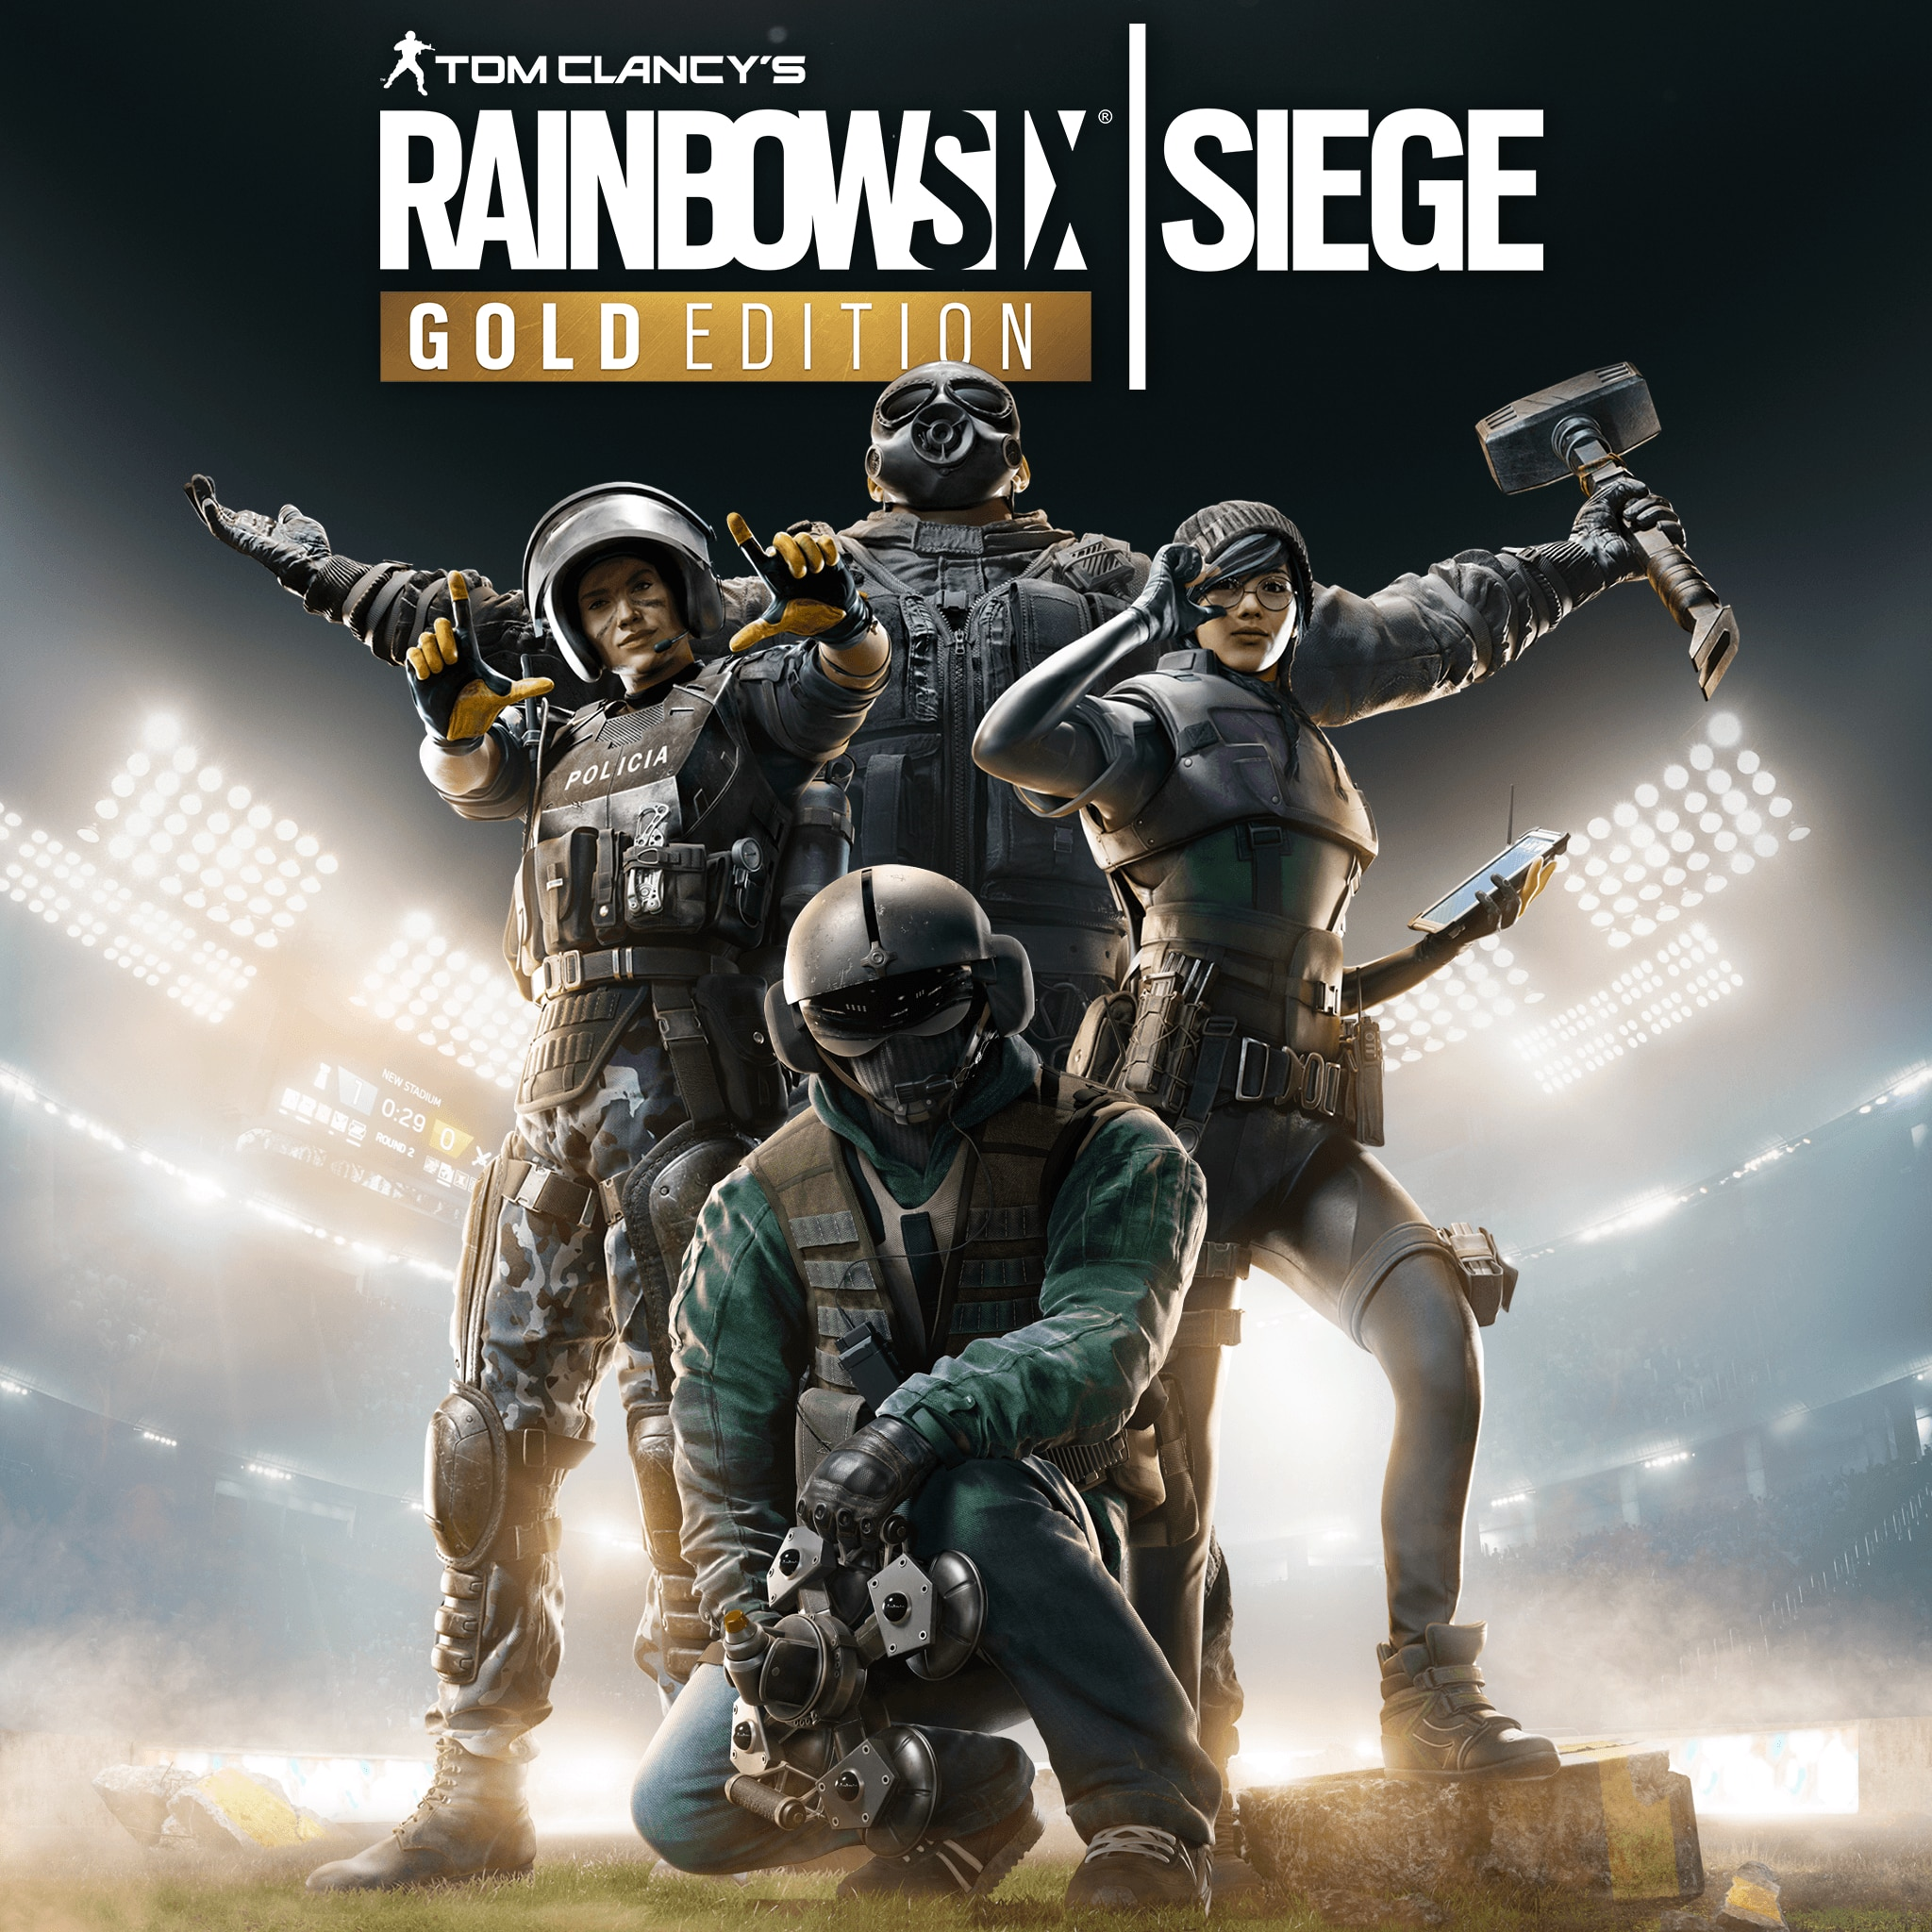 Tom Clancy's Rainbow Six® Siege Gold Edition PS4 & PS5